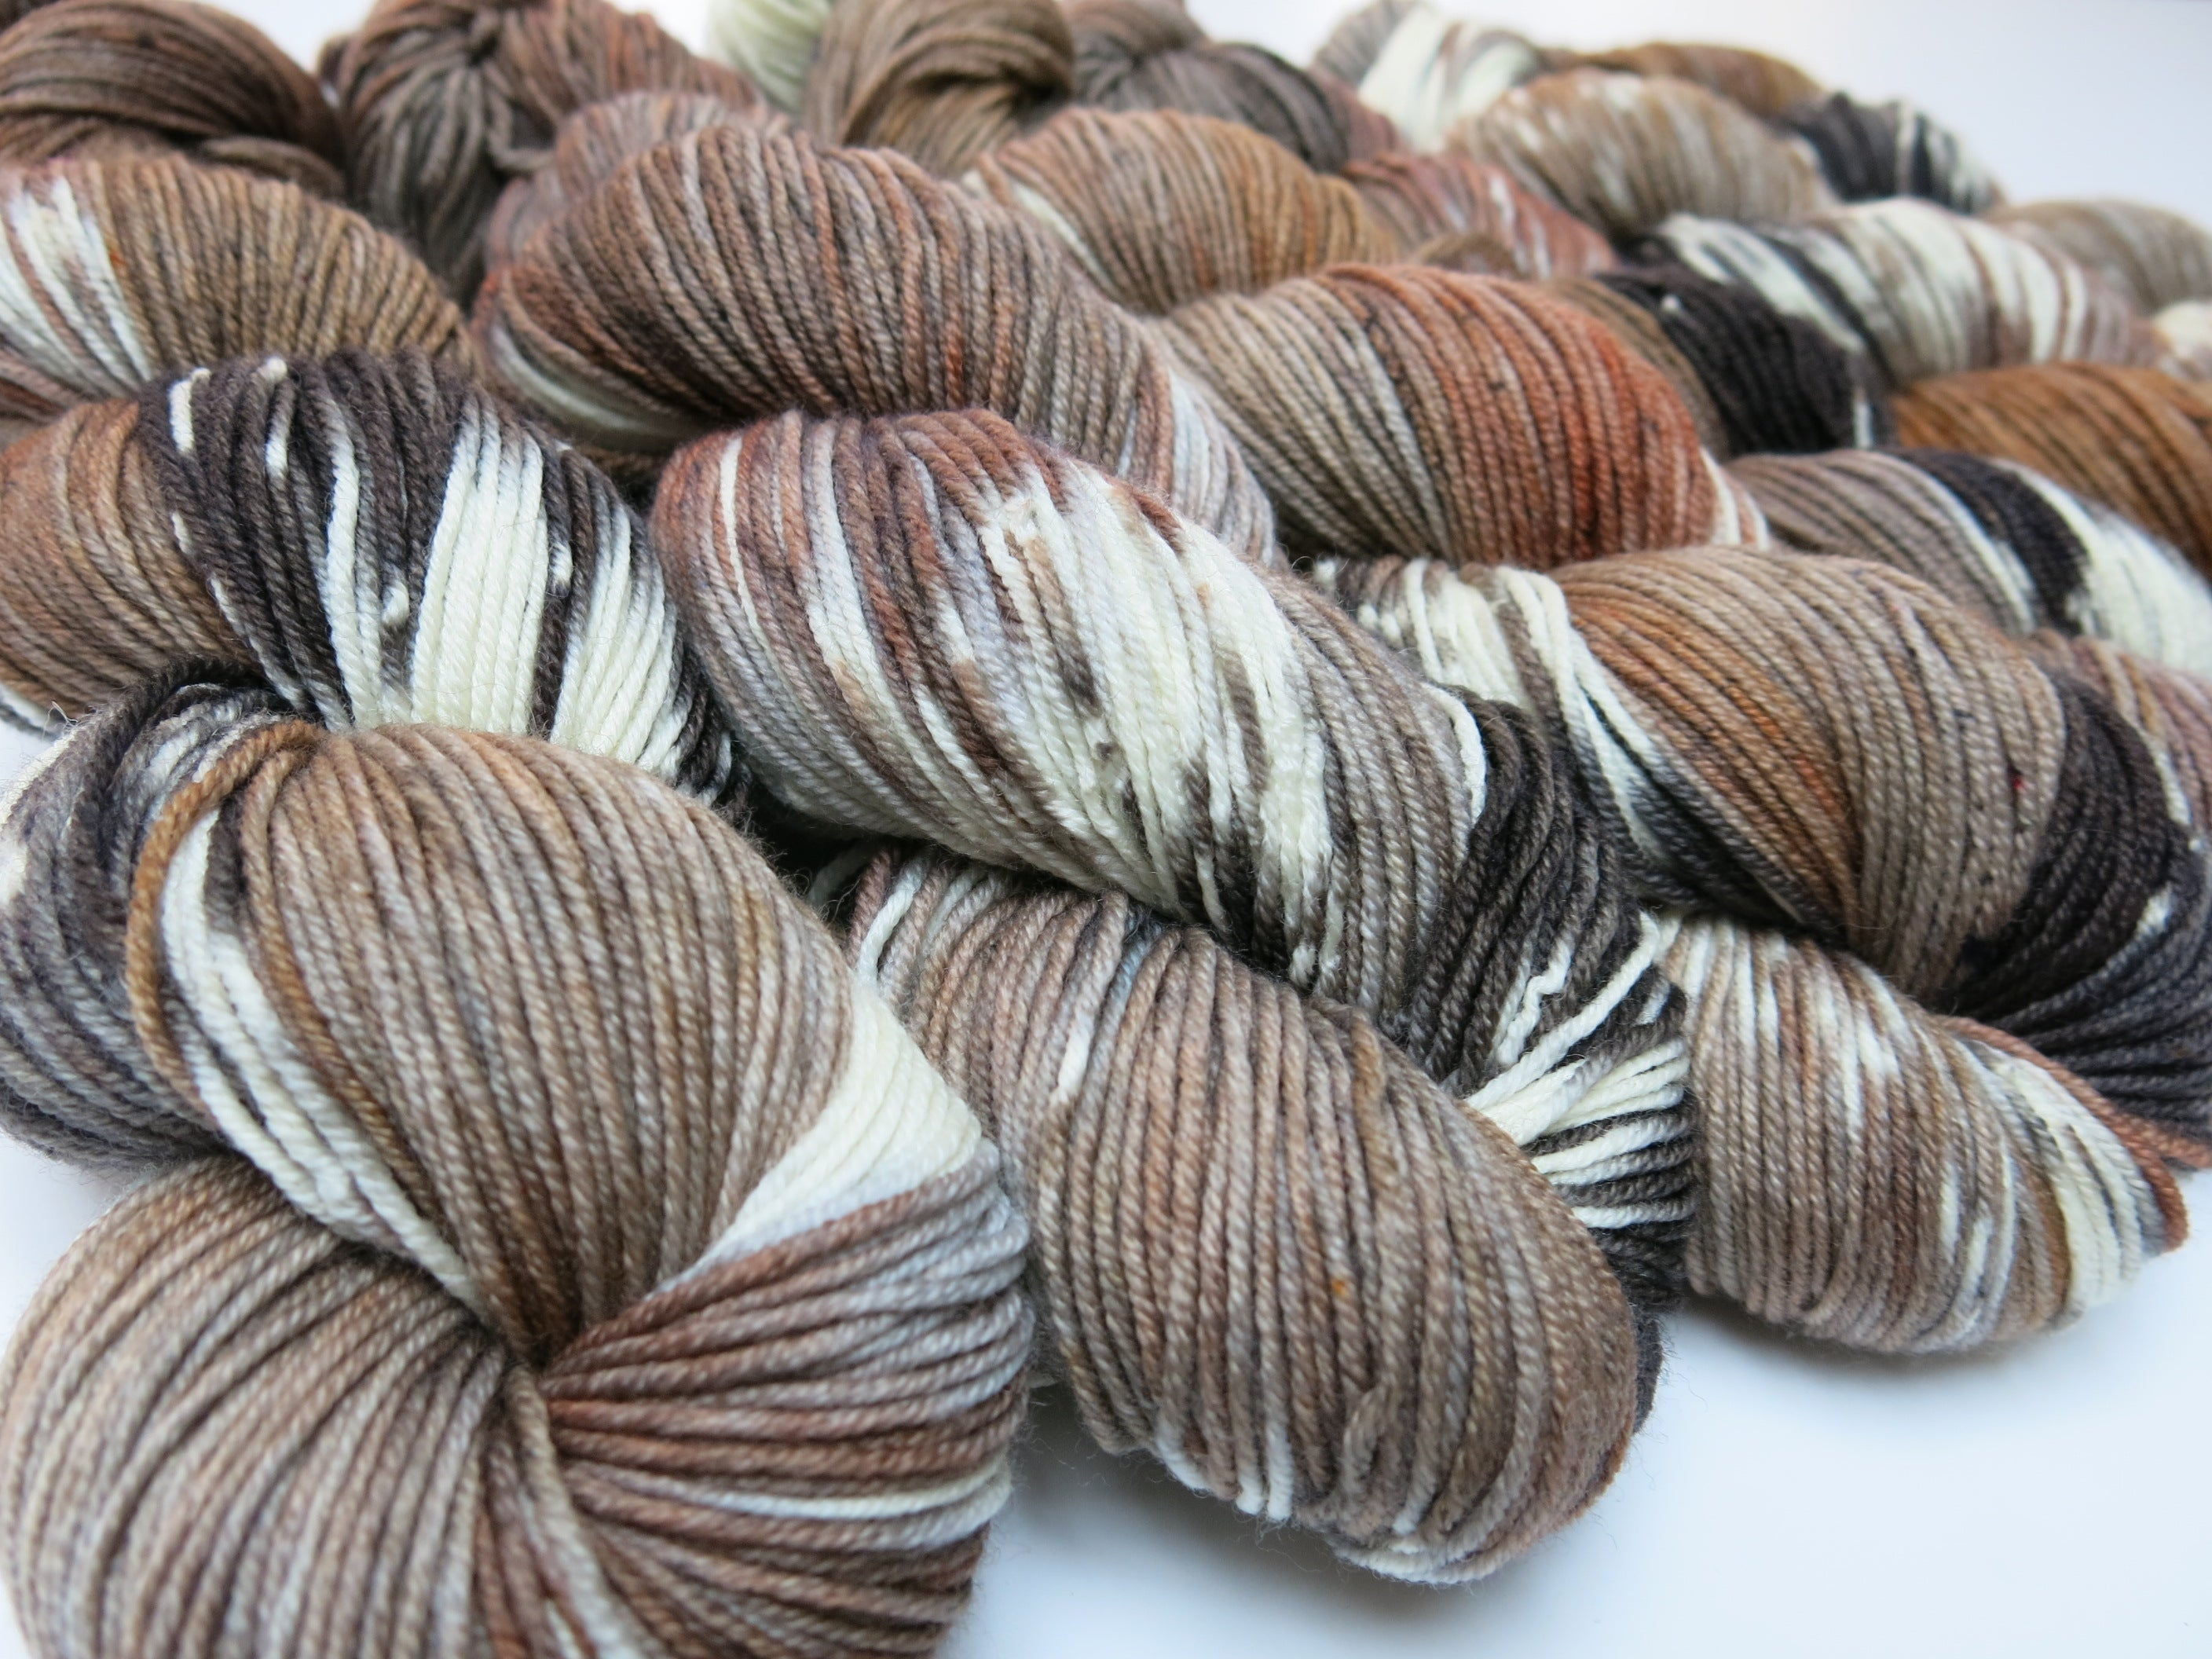 kettle dyed merino yarn skeins in the colors of a hare